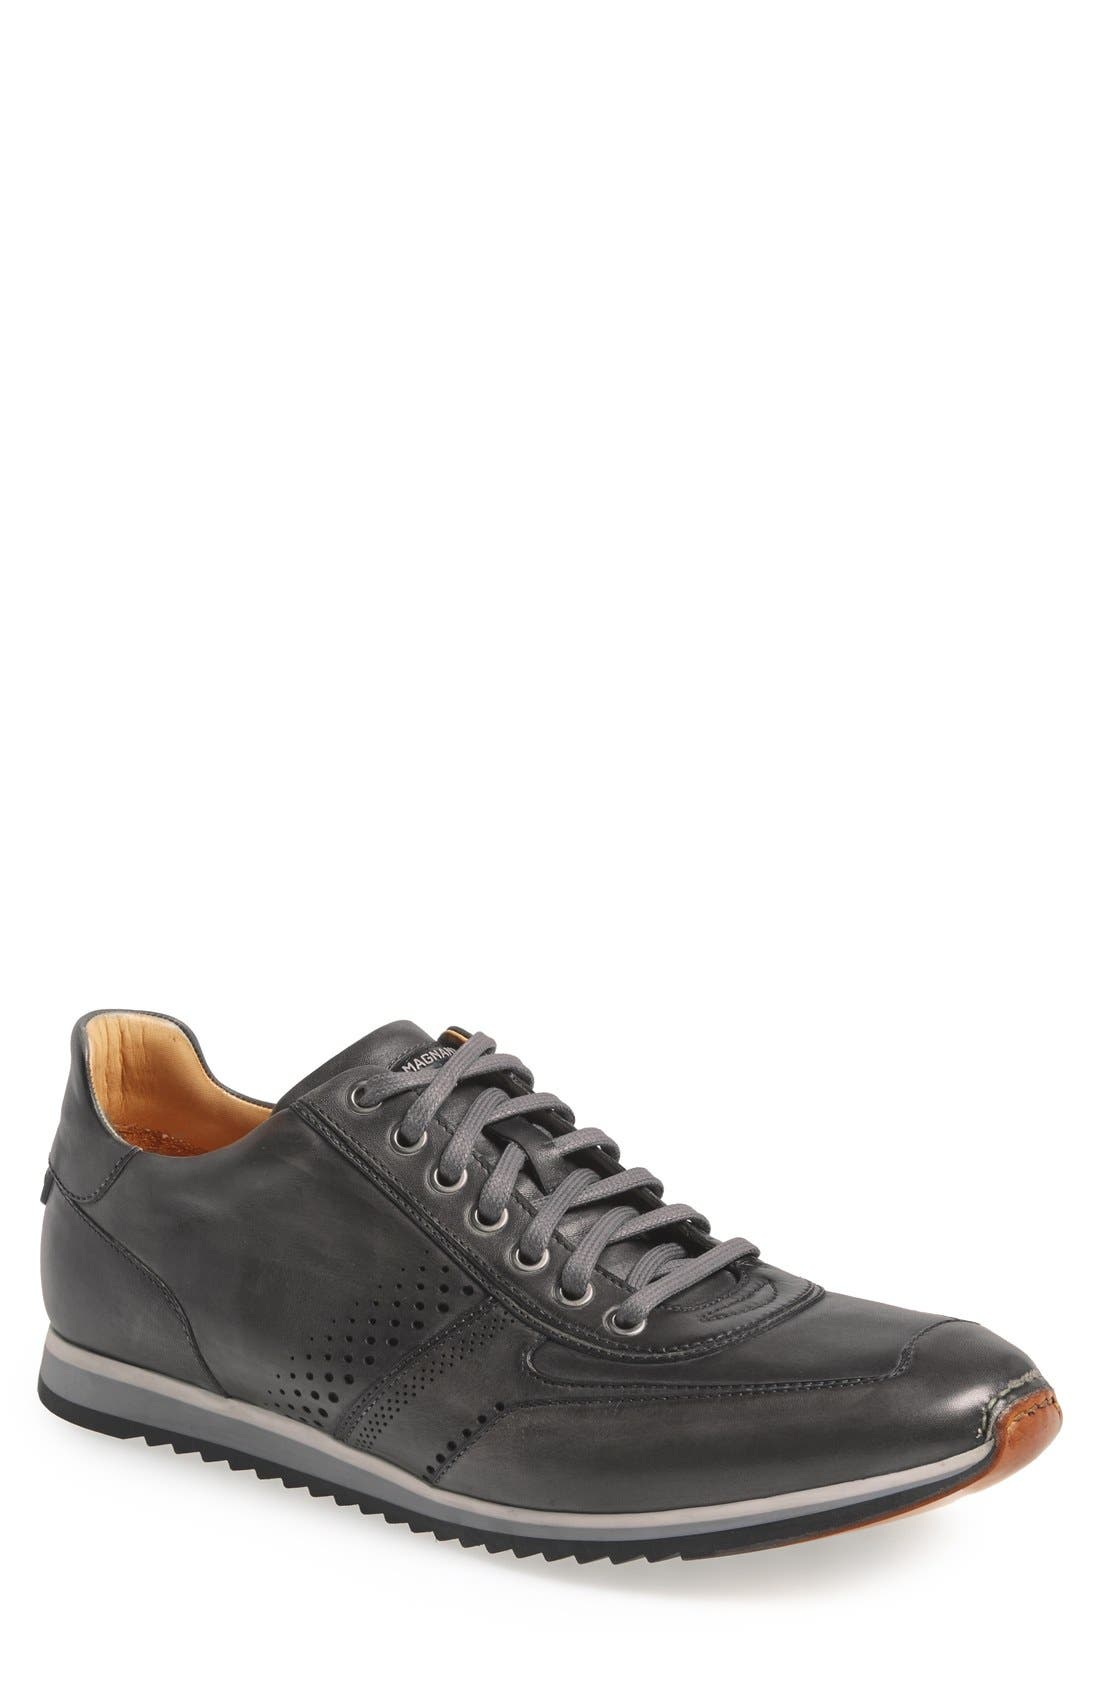 'Cristian' Sneaker,                             Main thumbnail 1, color,                             Grey Leather